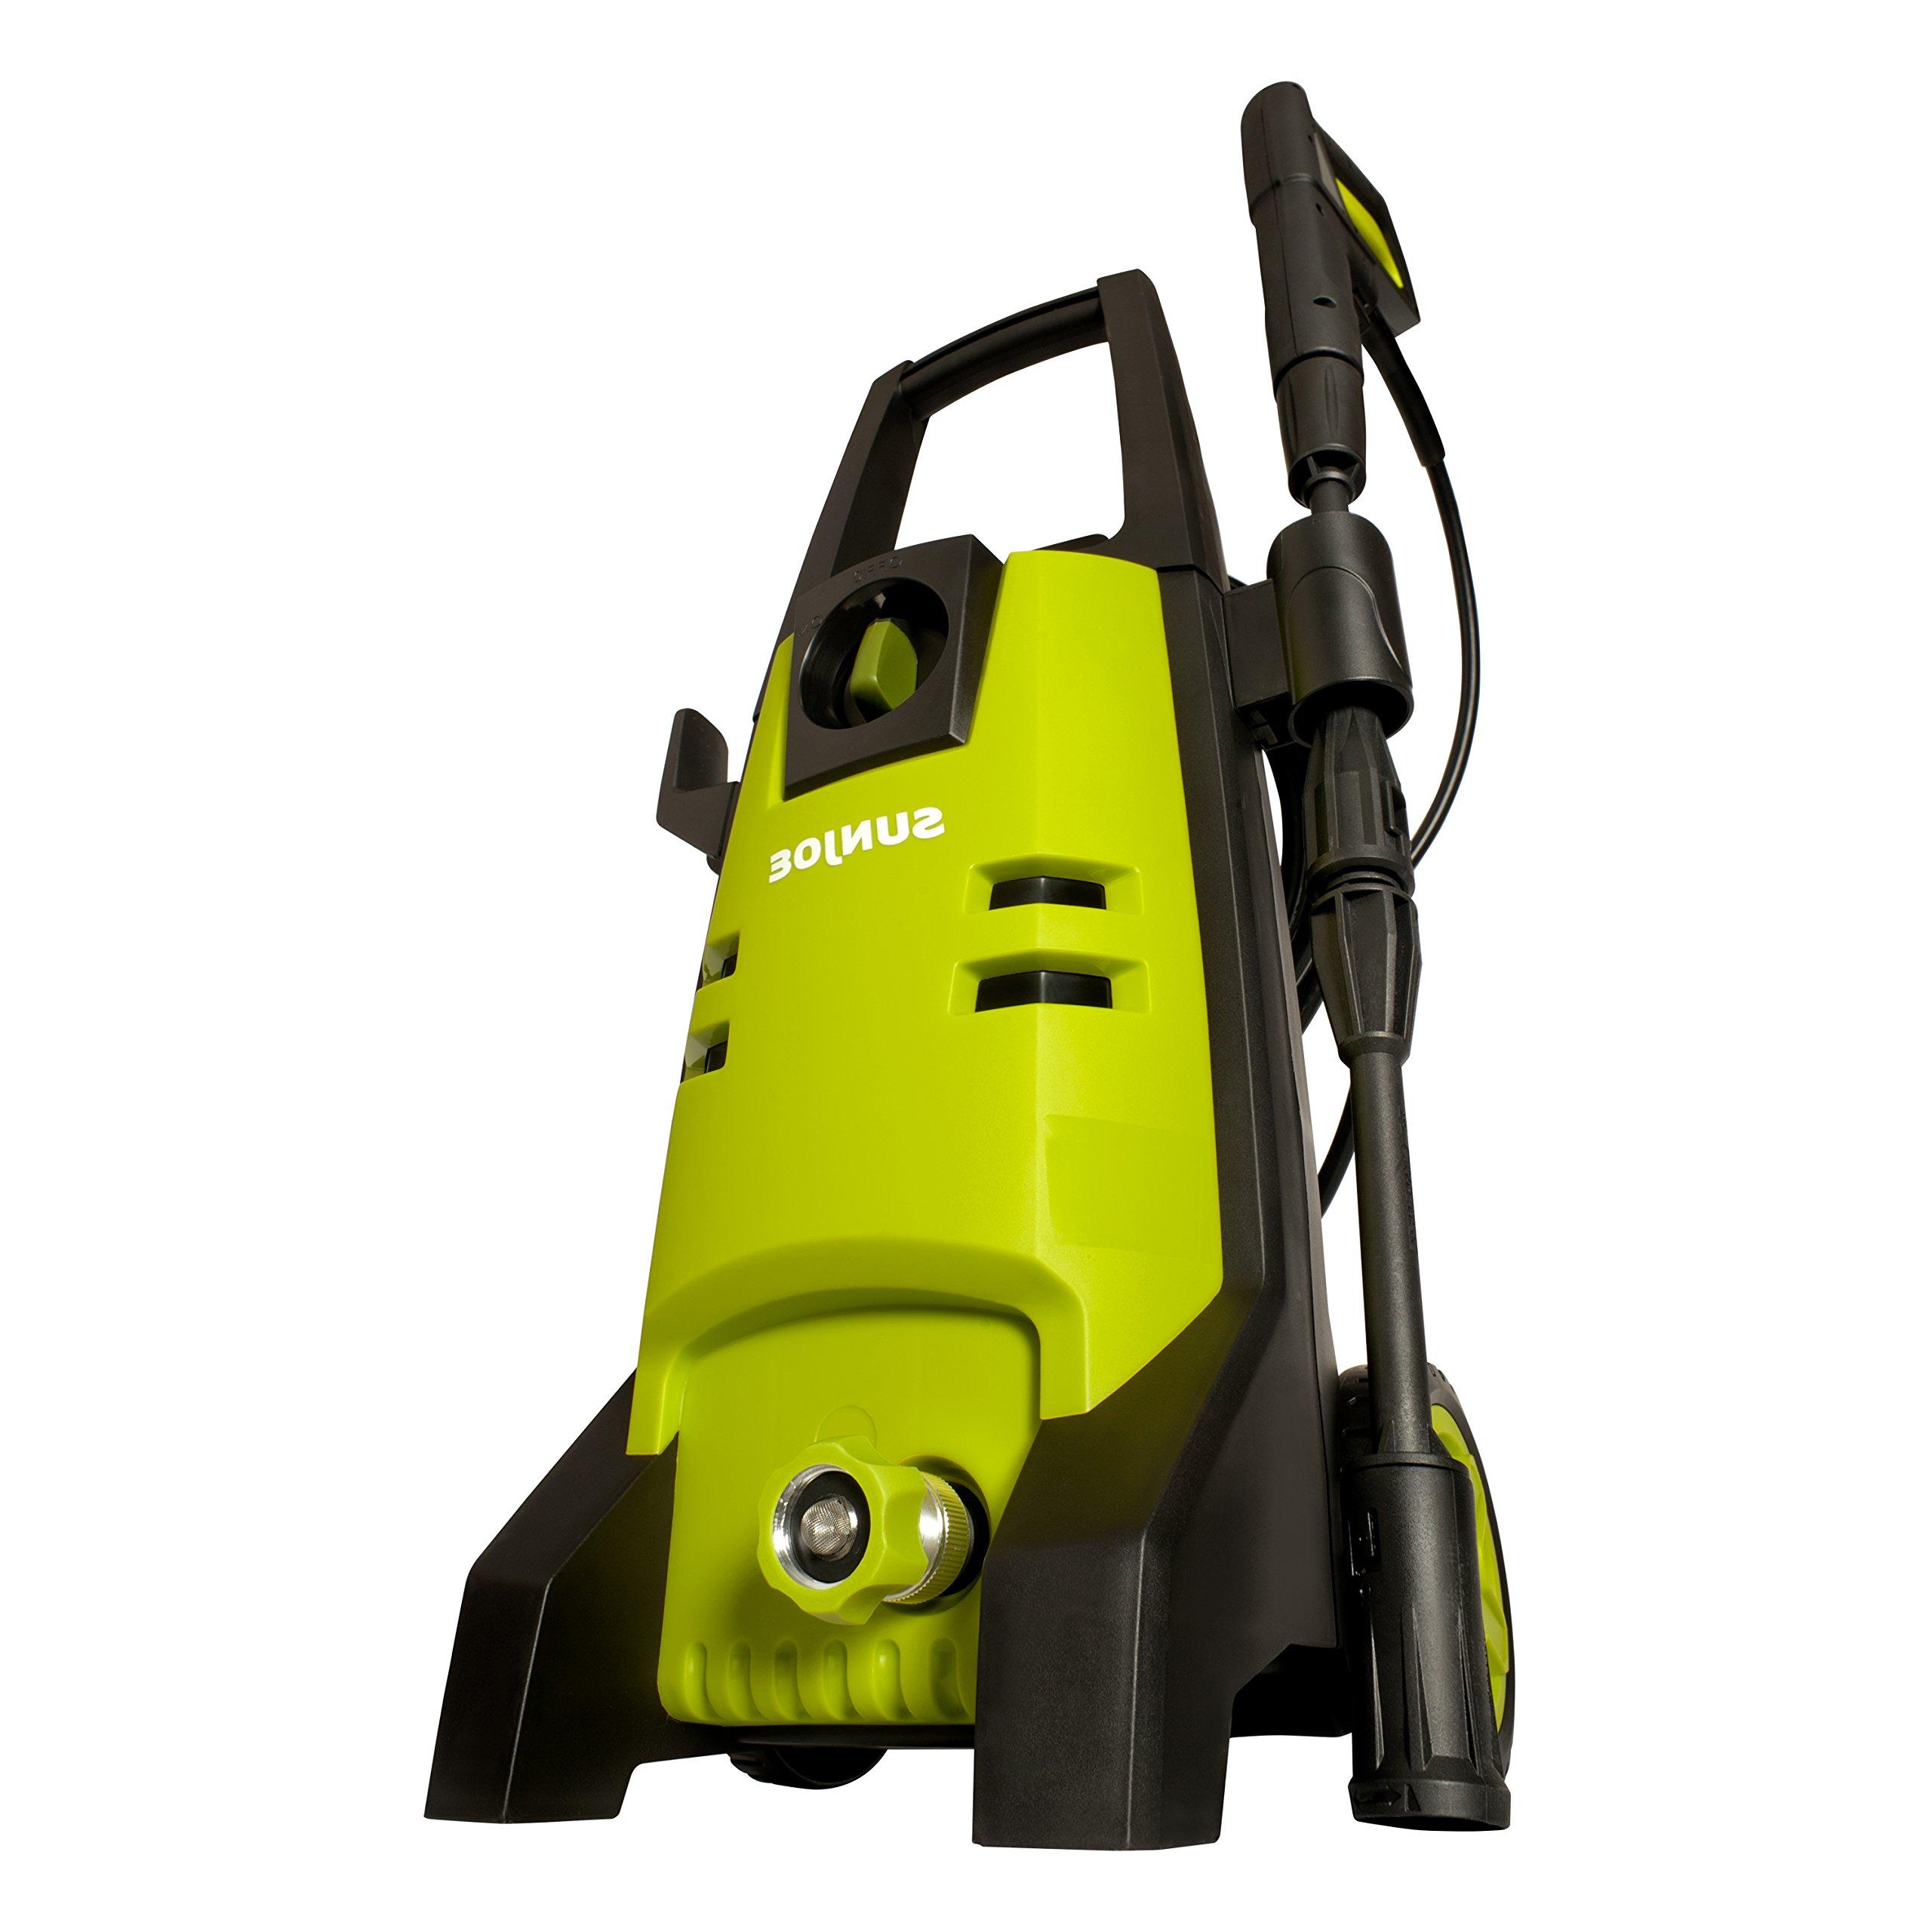 Sun Joe SPX1501 Electric Pressure Washer |1800 PSI |1.8 GPM